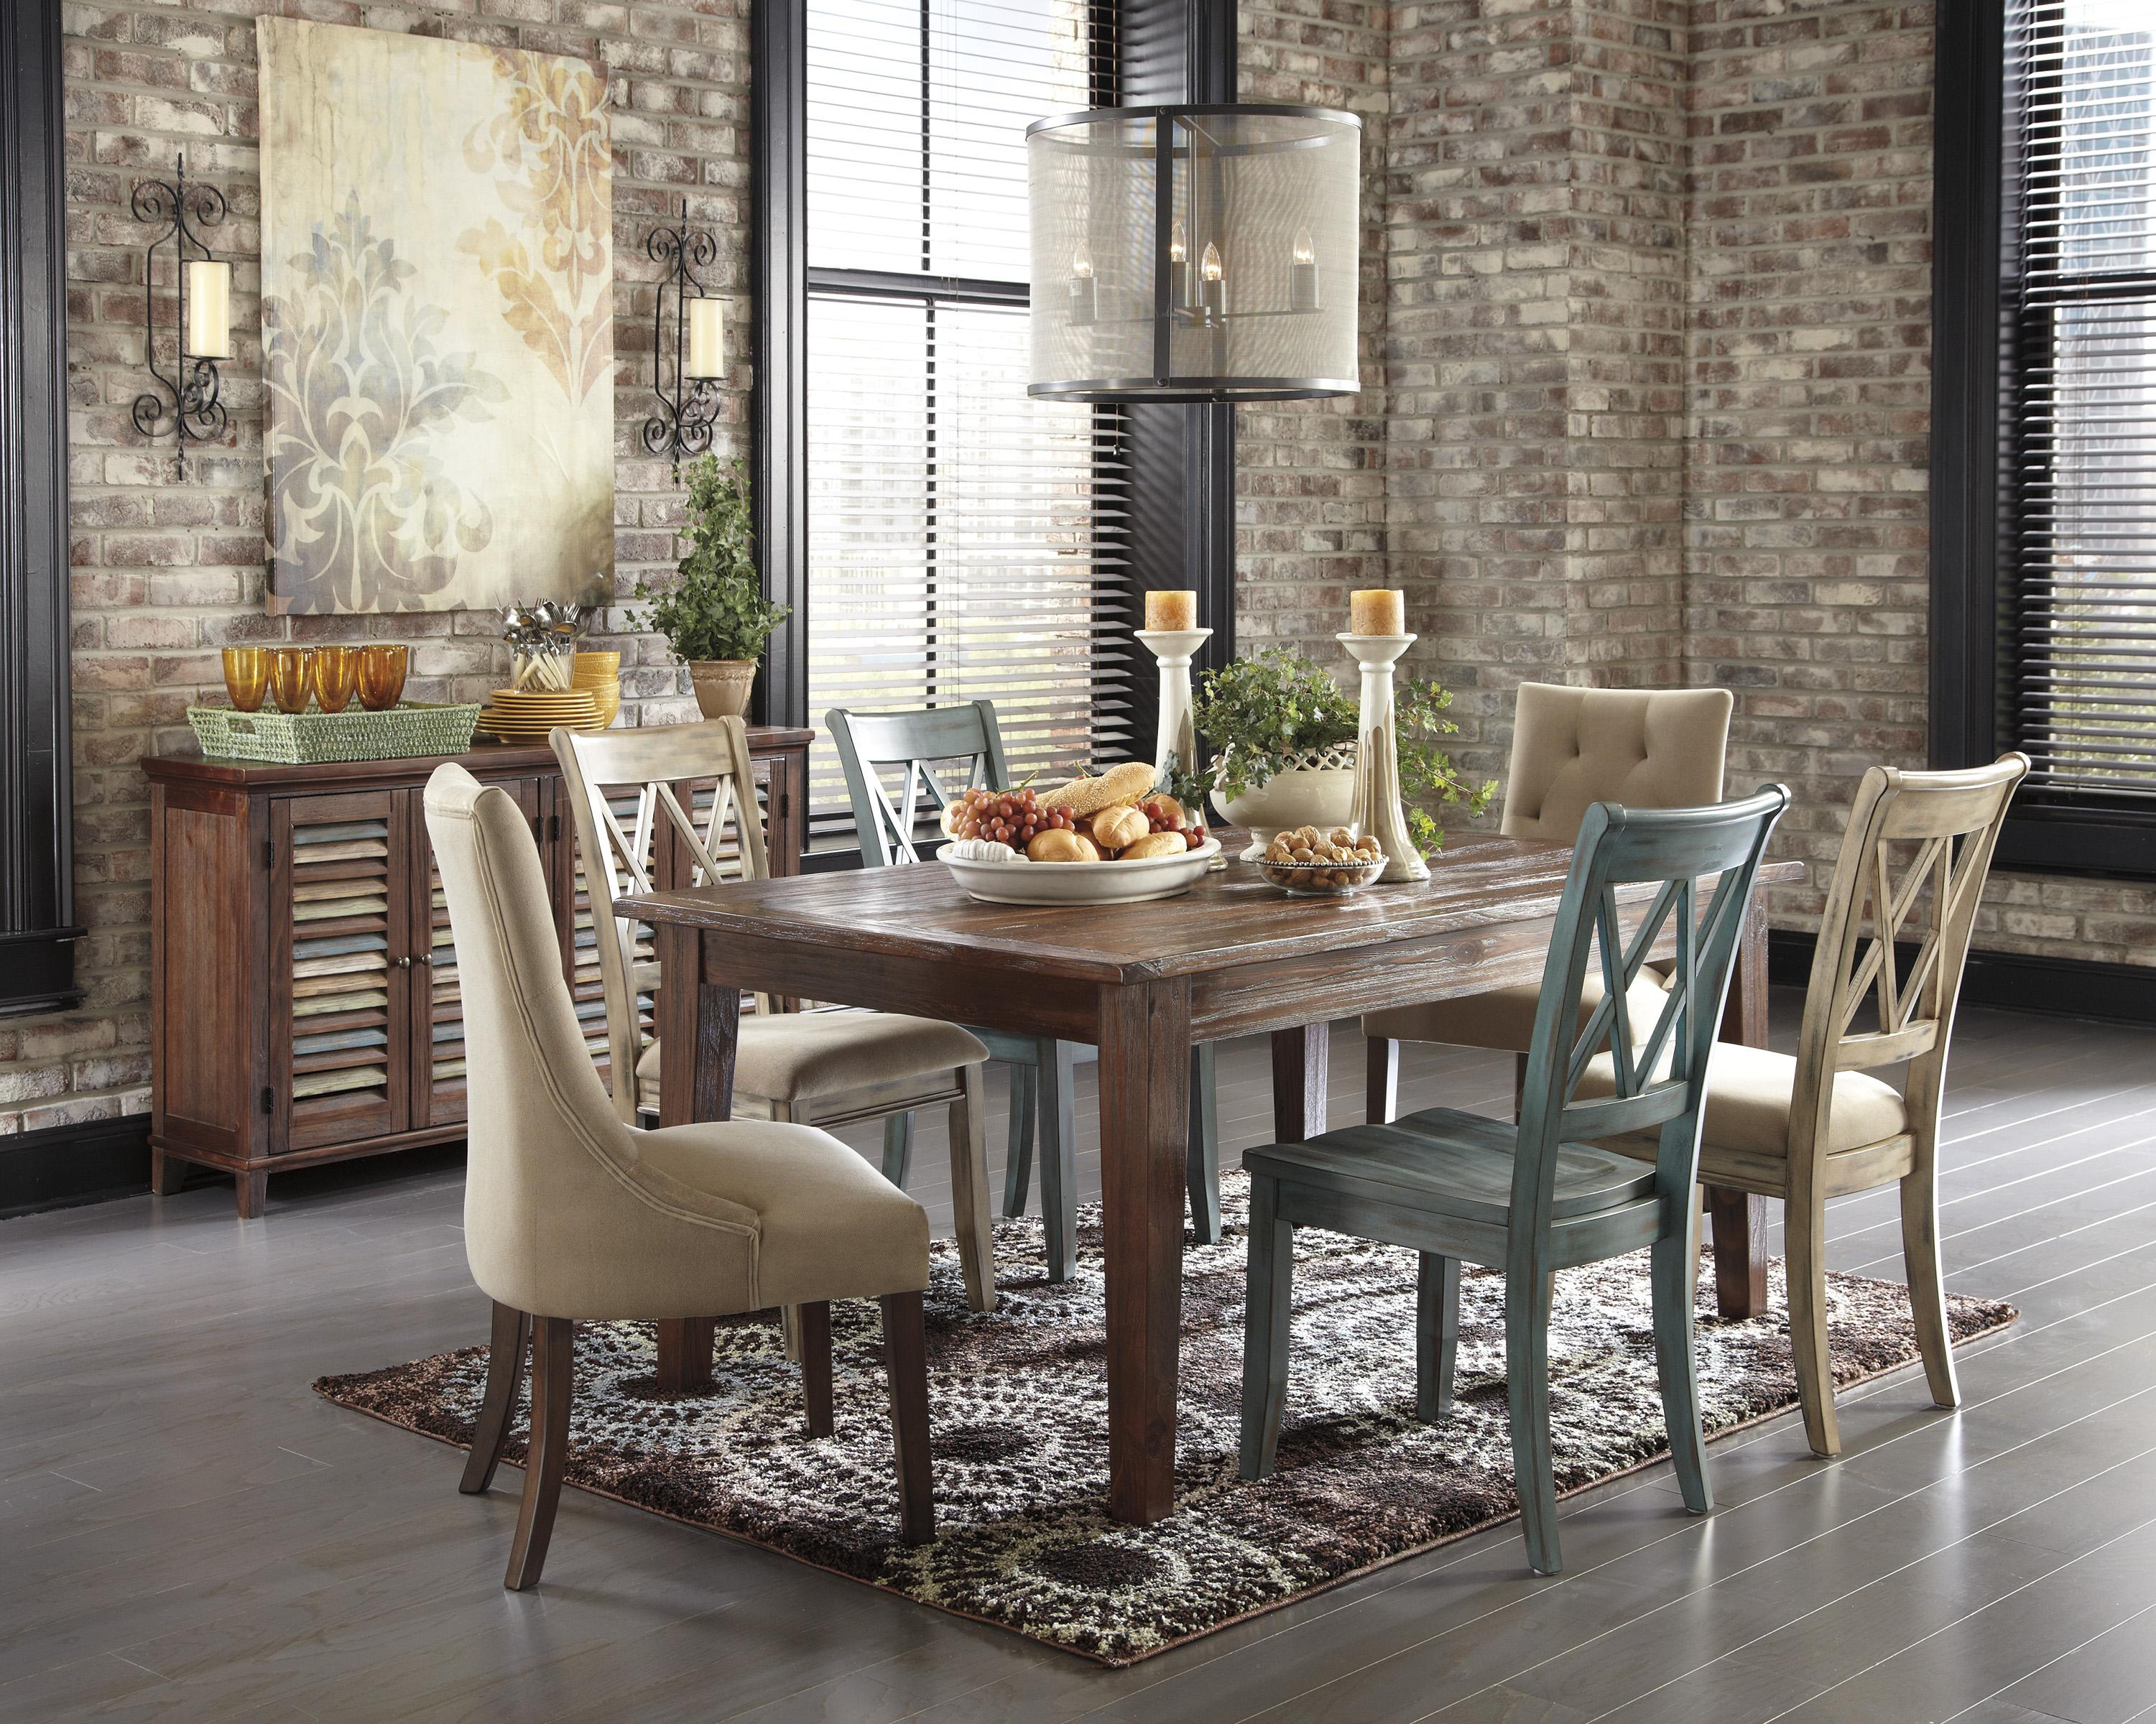 item vintage kitchen tables Signature Design by Ashley Mestler 7 Piece Table Set with Antique White Side Chairs with Upholstered Seats Godby Home Furnishings Dining 7 or more